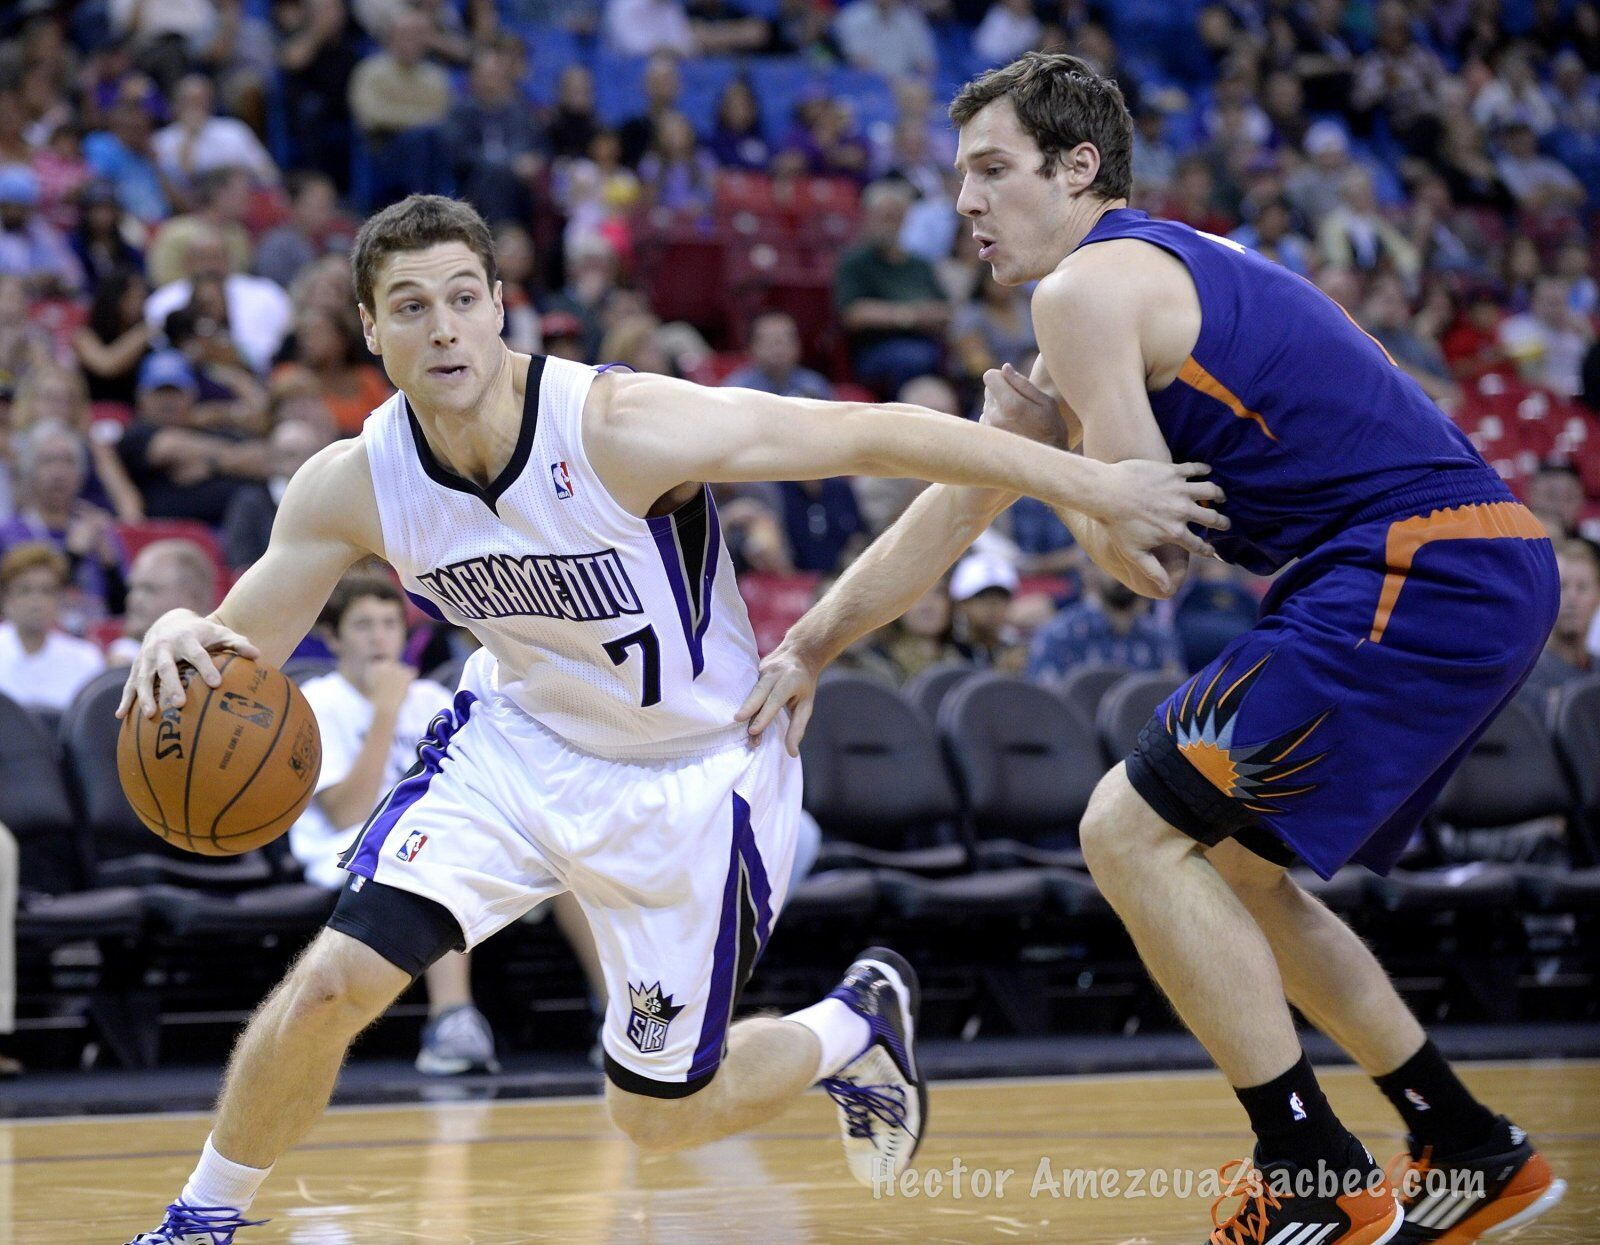 What causes NBA draft busts? Part 1: Functional strength